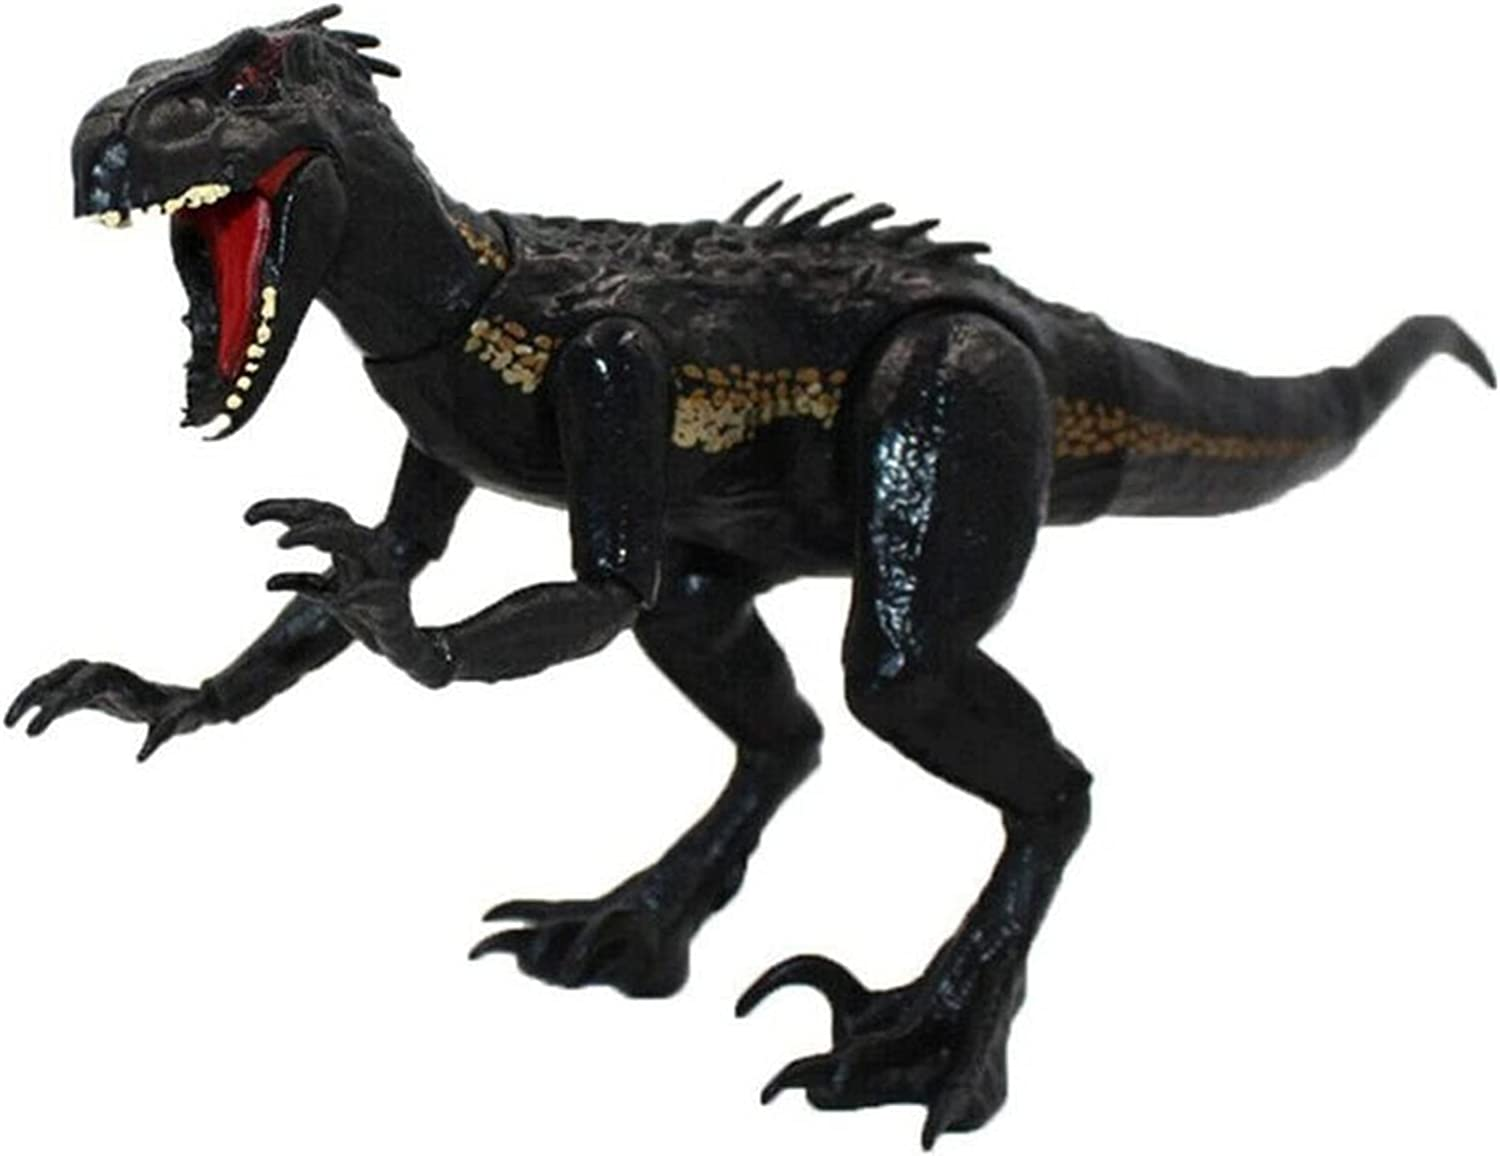 DUANCUICUIZ Model 15cm Dinosaur Joint Colo Doll Tucson Mall Classic Store Movable